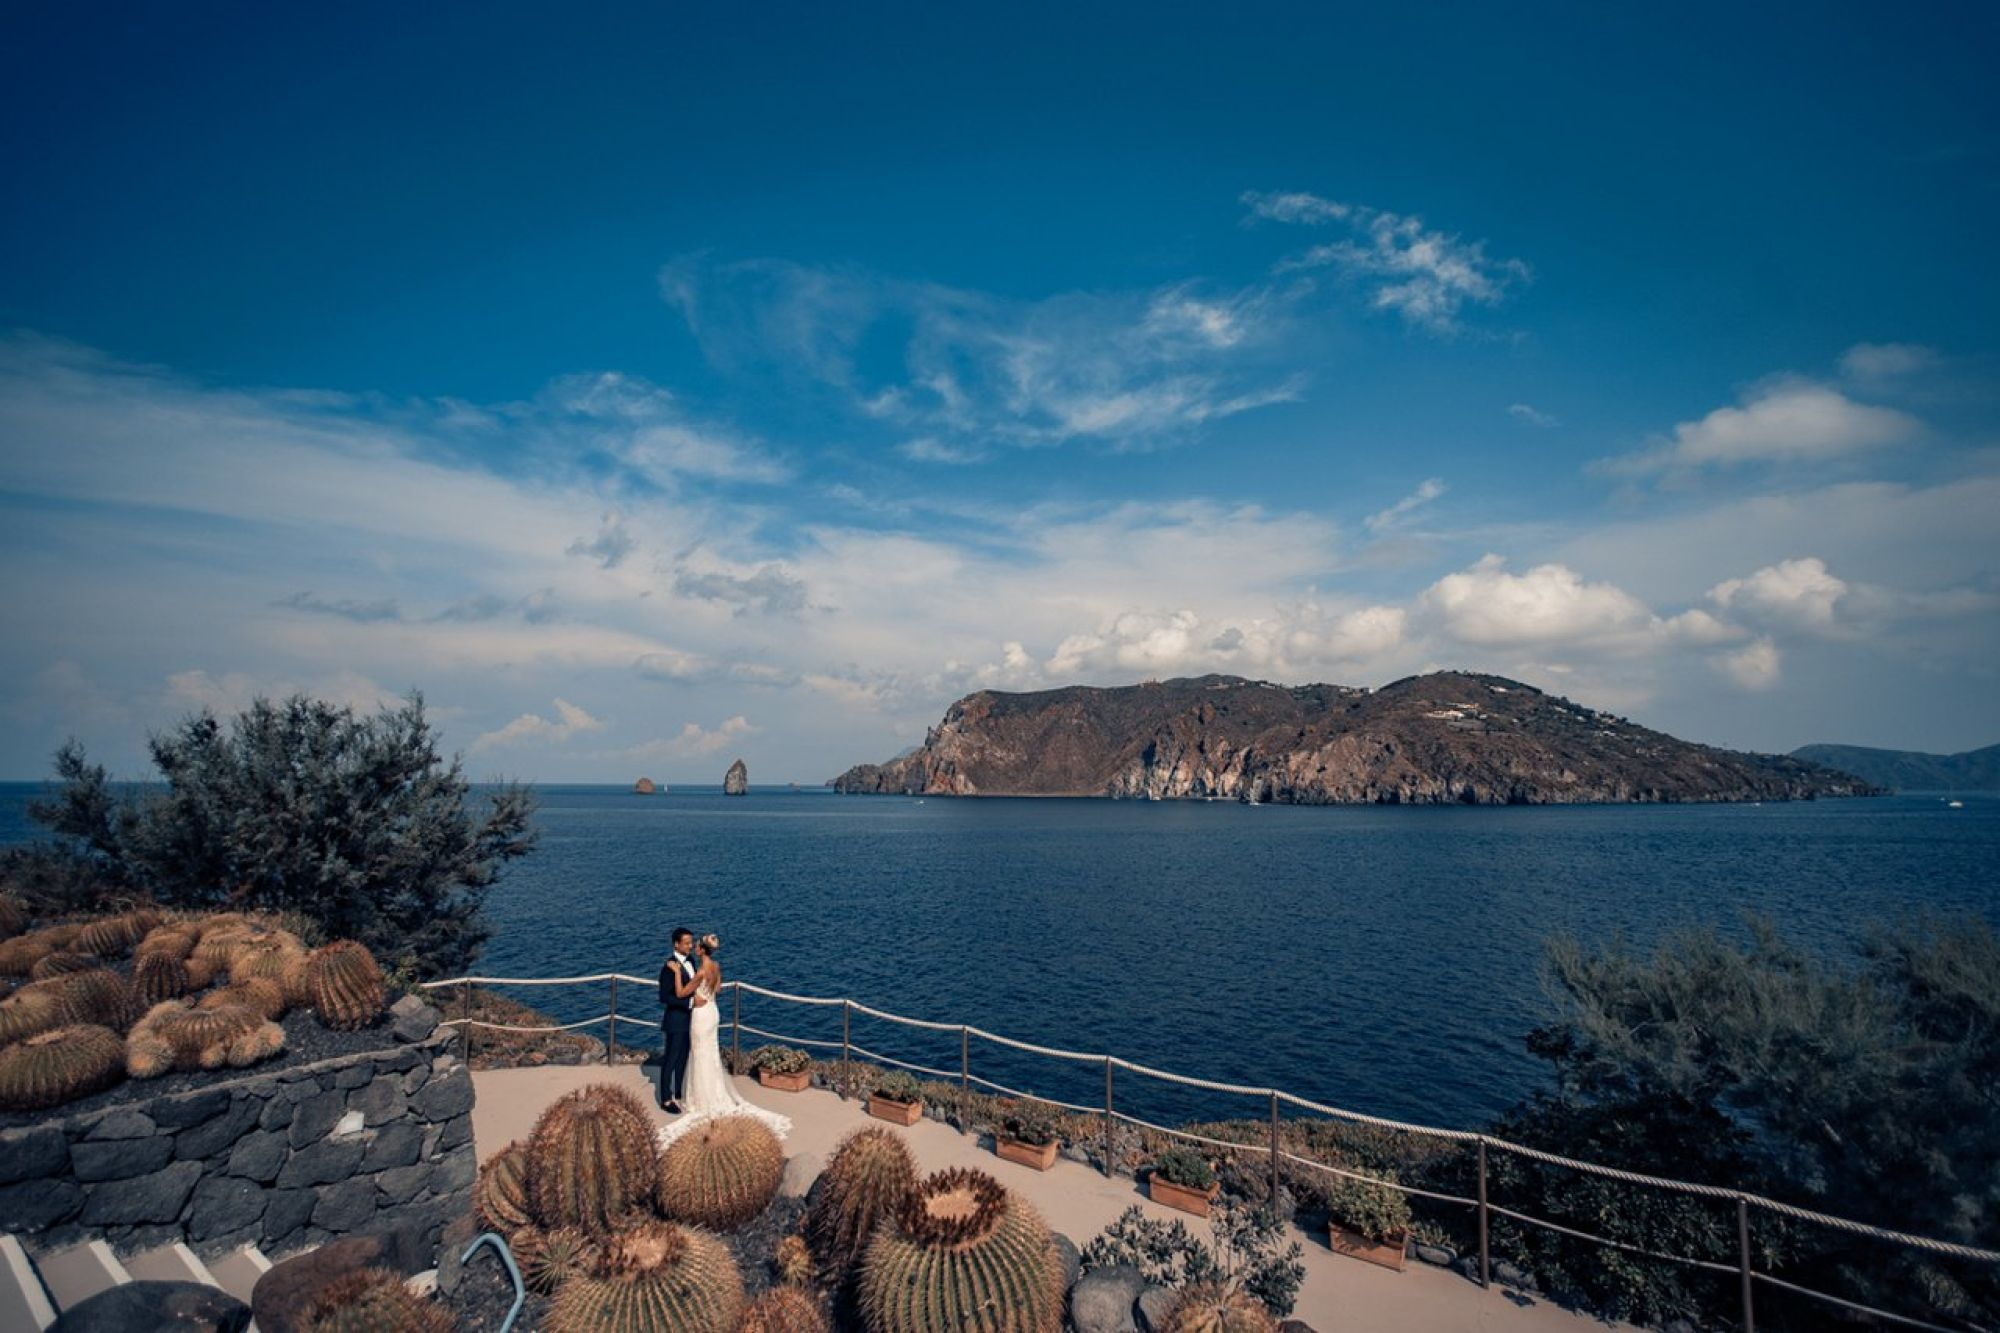 Click to enlarge image matrimonio-nikki-giuseppe-chiello-masterphotographer-sicily-wedding 37.jpg